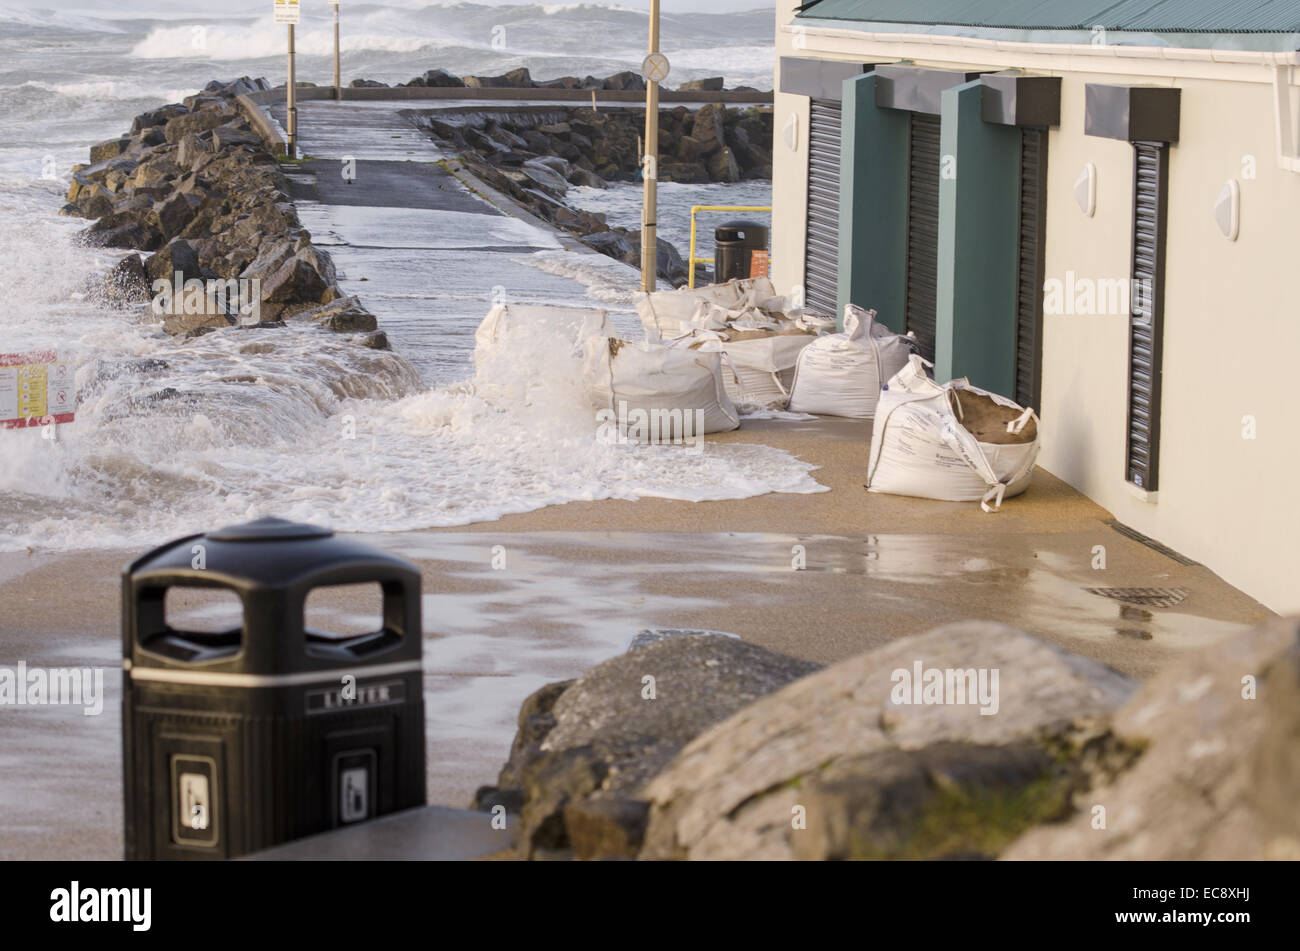 Portrush, Northern Ireland, UK. 10th Dec, 2014. Babuska Coffee Shop West Strand Portrush Northern Ireland braves - Stock Image